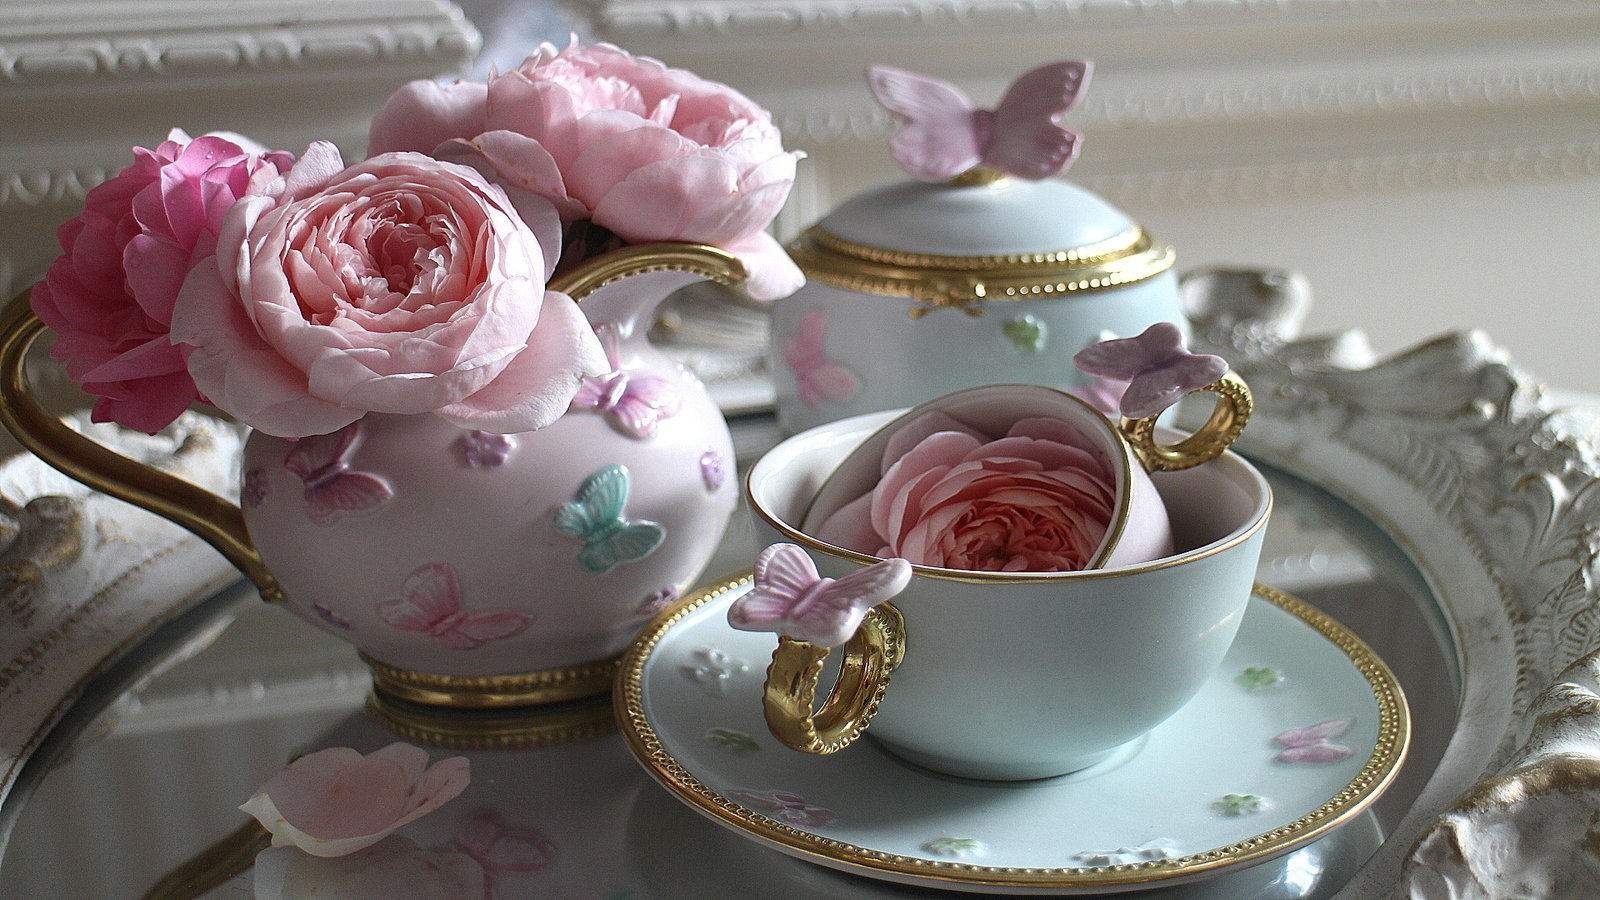 Villary luxury porcelain set